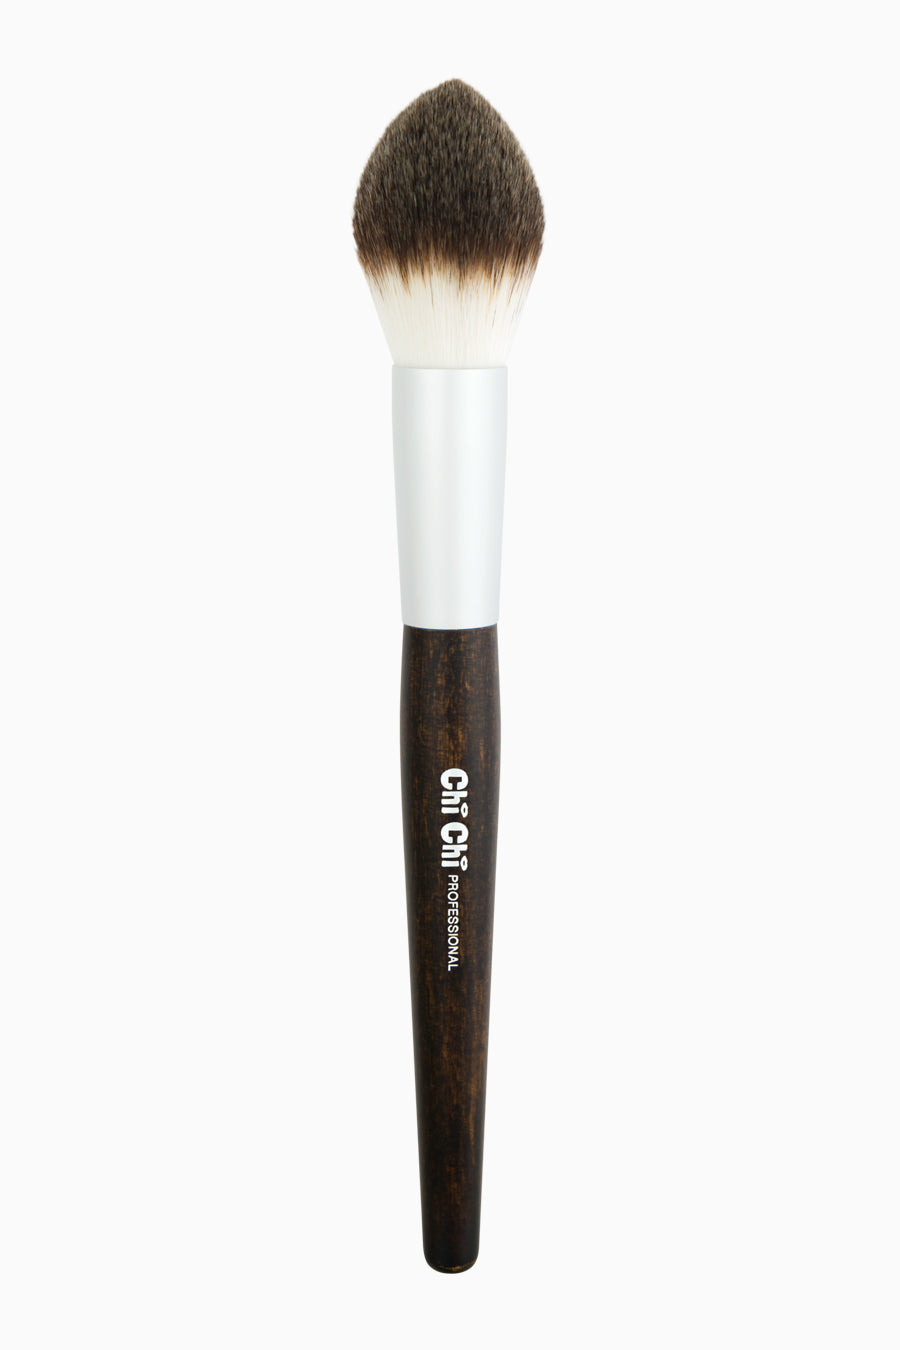 Tapered Face Powder Brush - 125